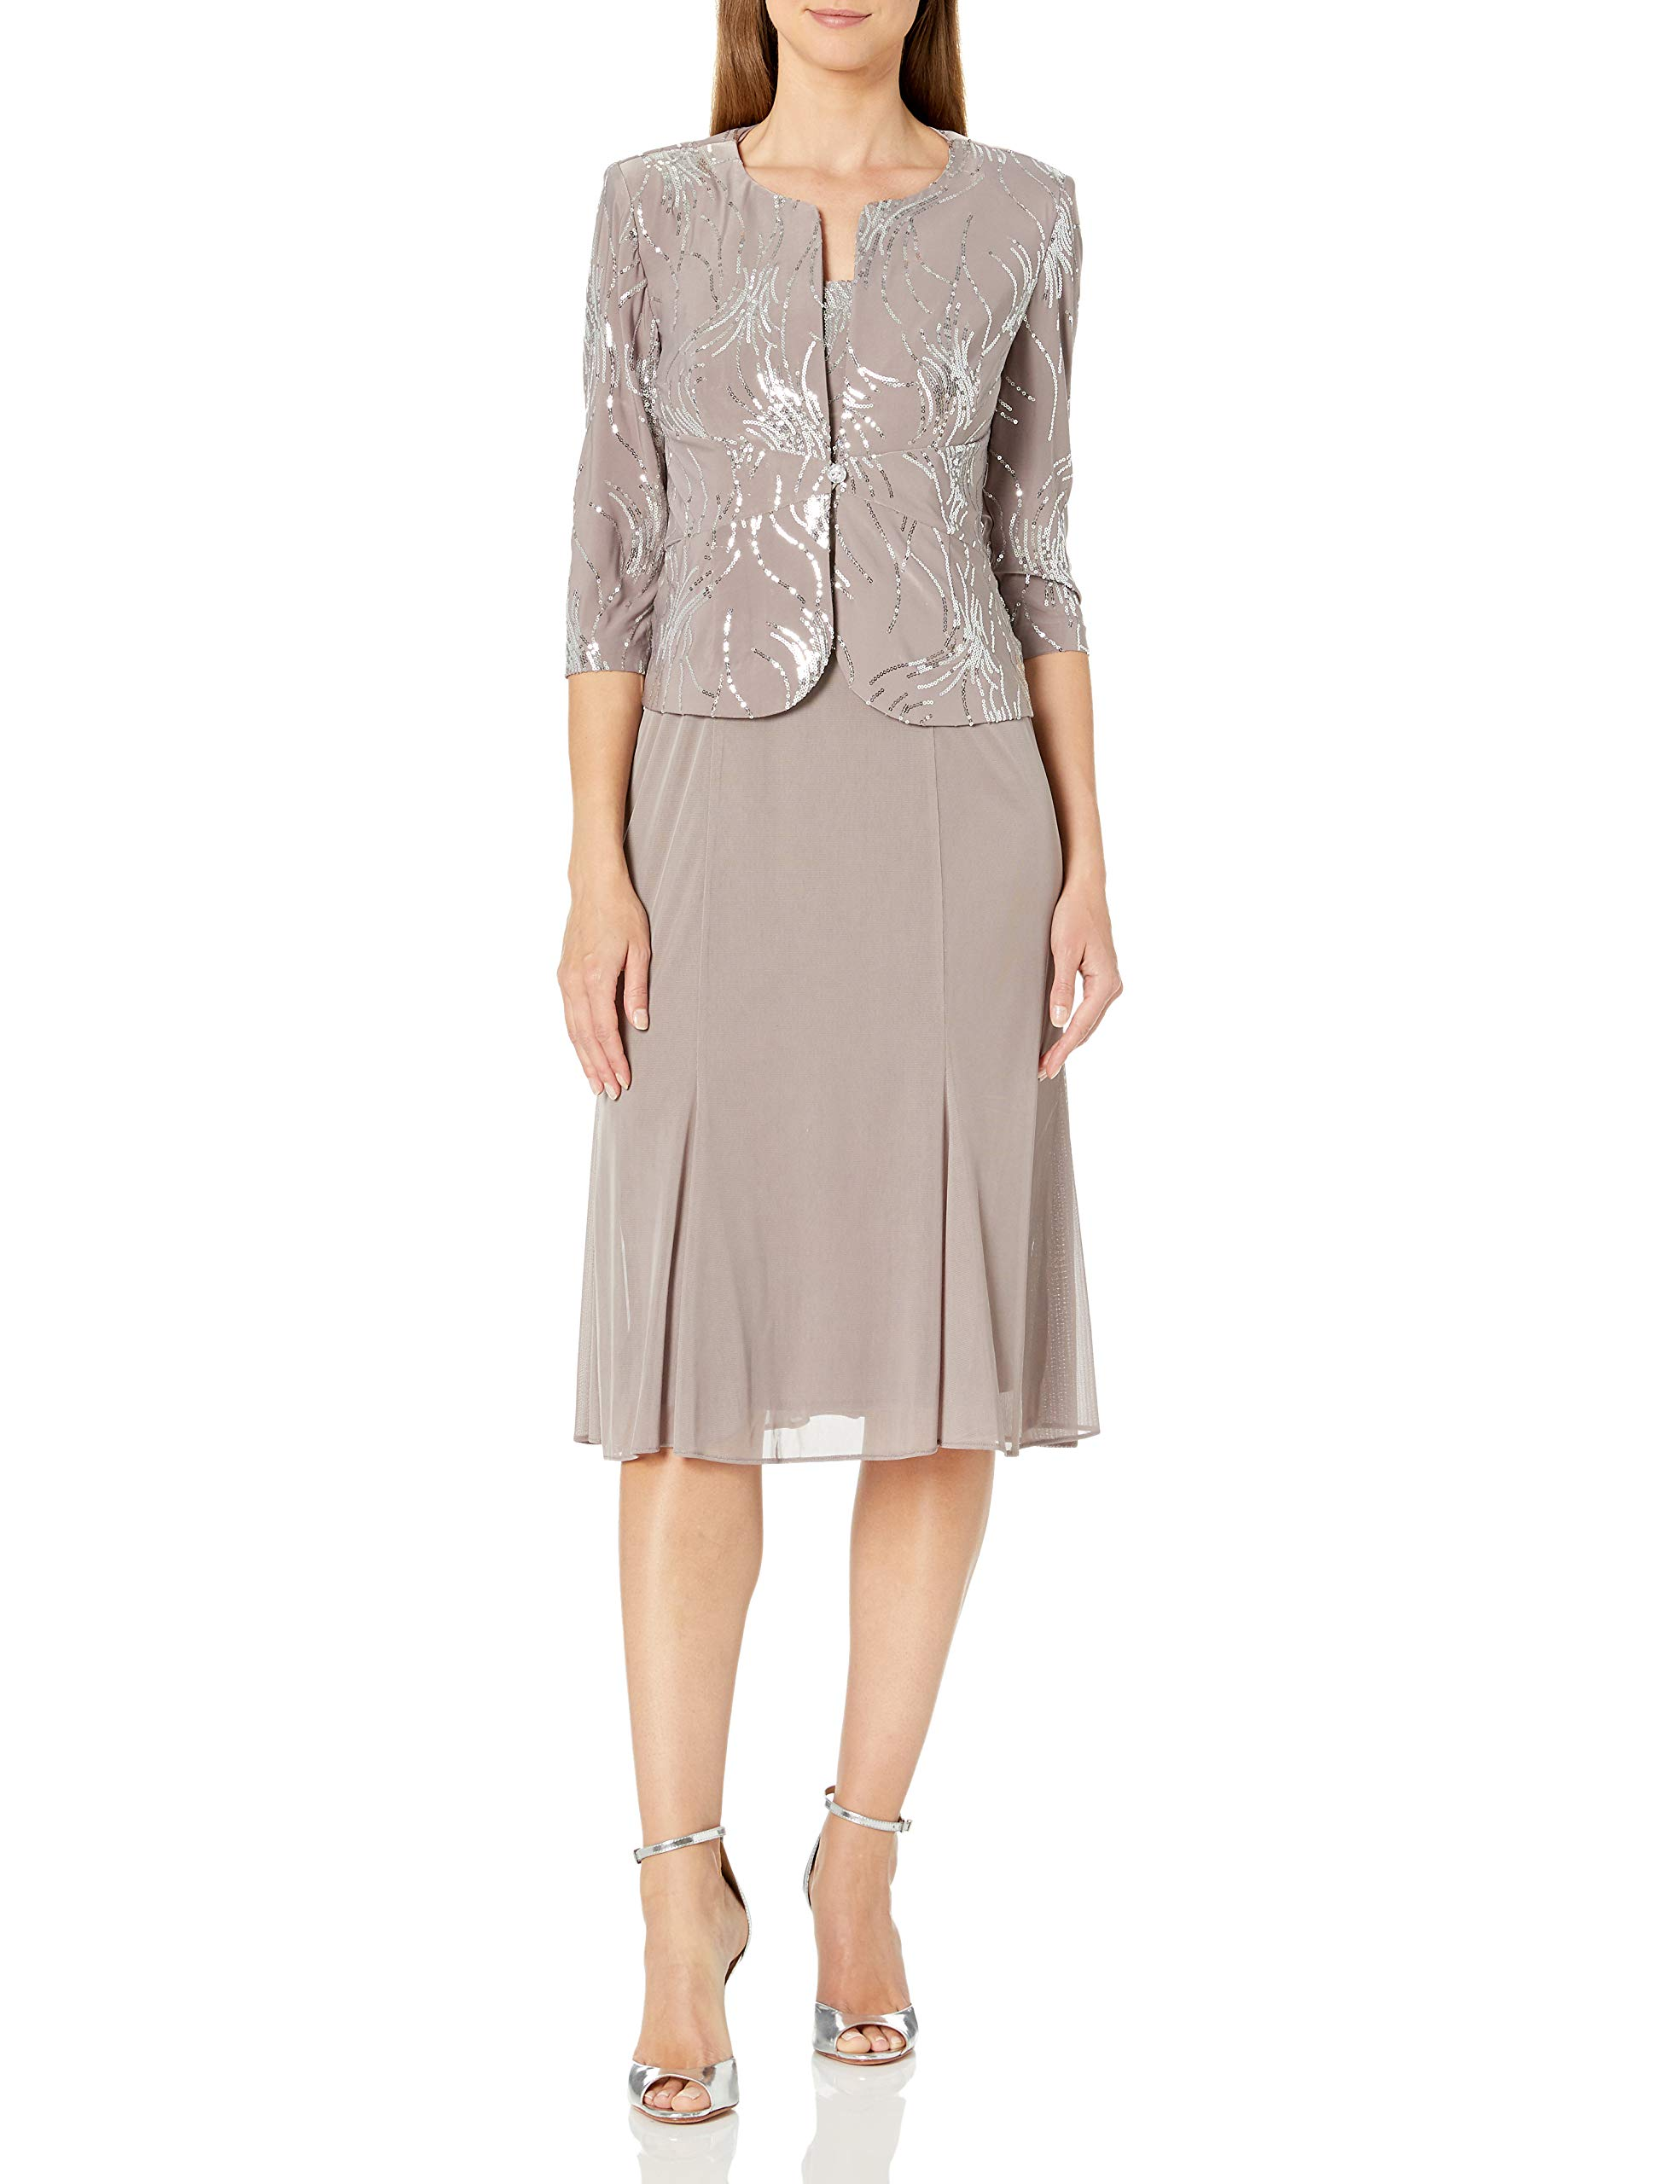 Mother Of The Bride Dresses - Women's Tea Length Mock Dress With Sequin Jacket (Petite And Regular Sizes)